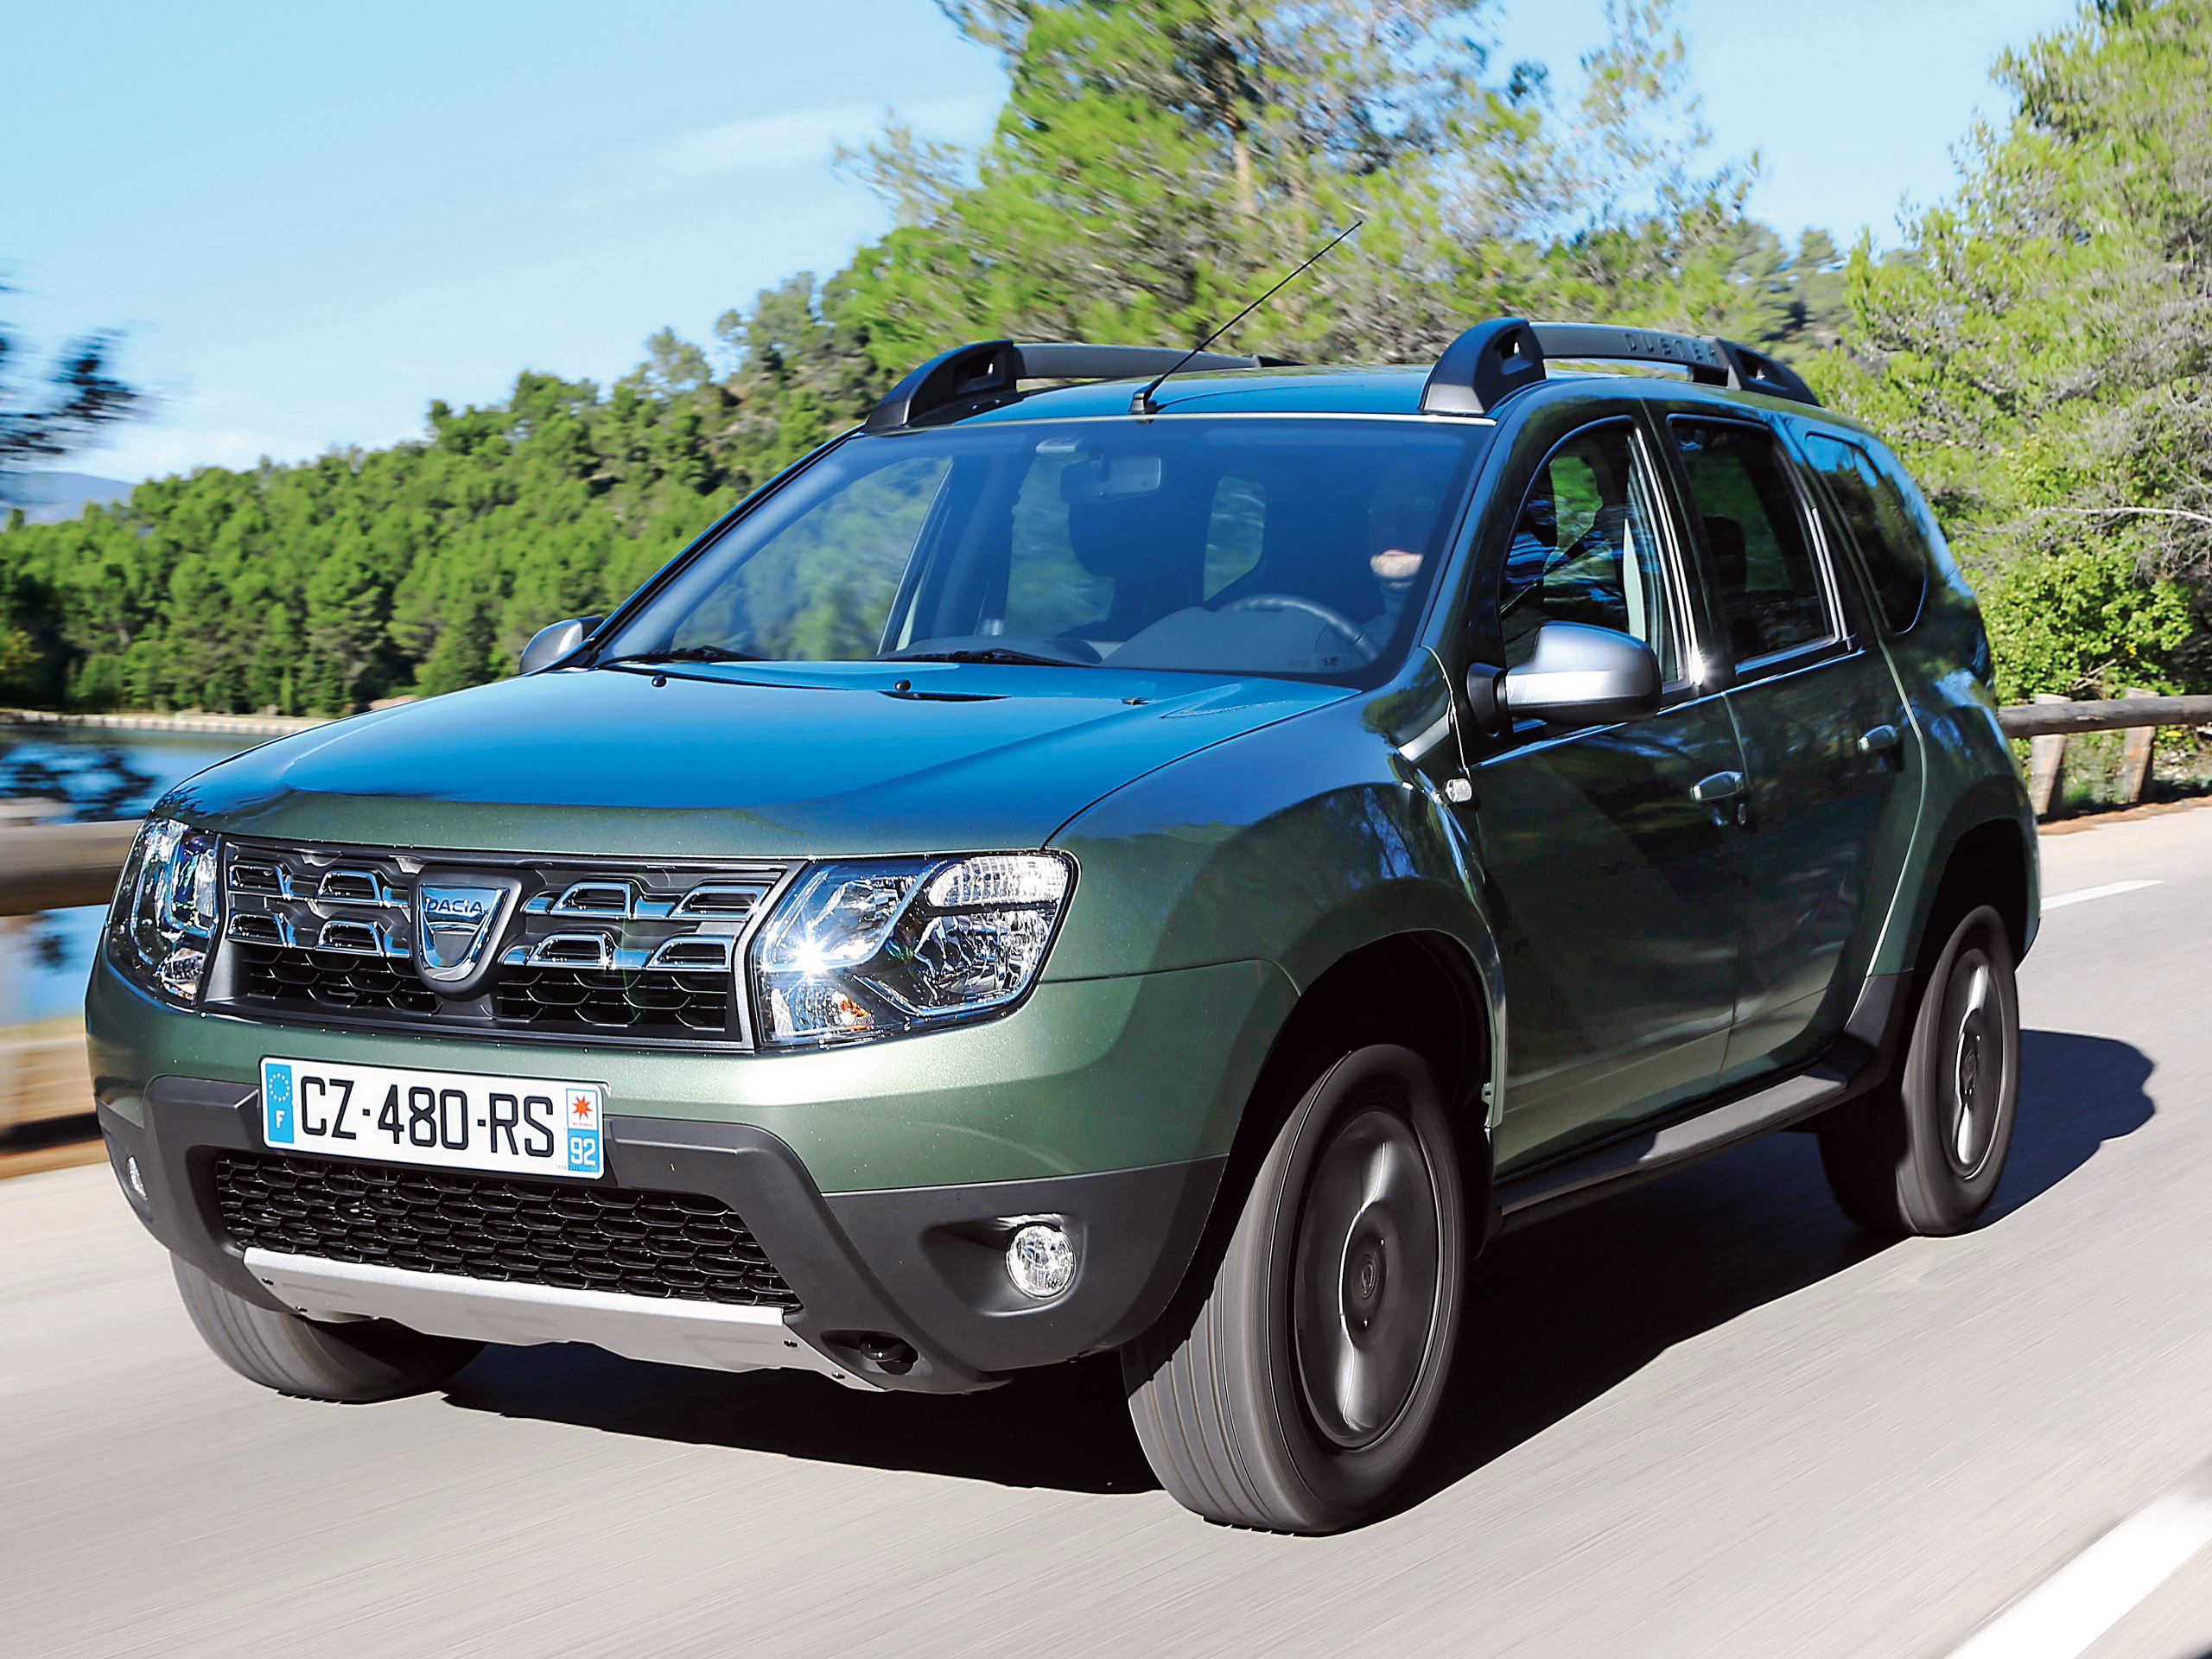 dacia duster facelift dci 110 4x4 test. Black Bedroom Furniture Sets. Home Design Ideas